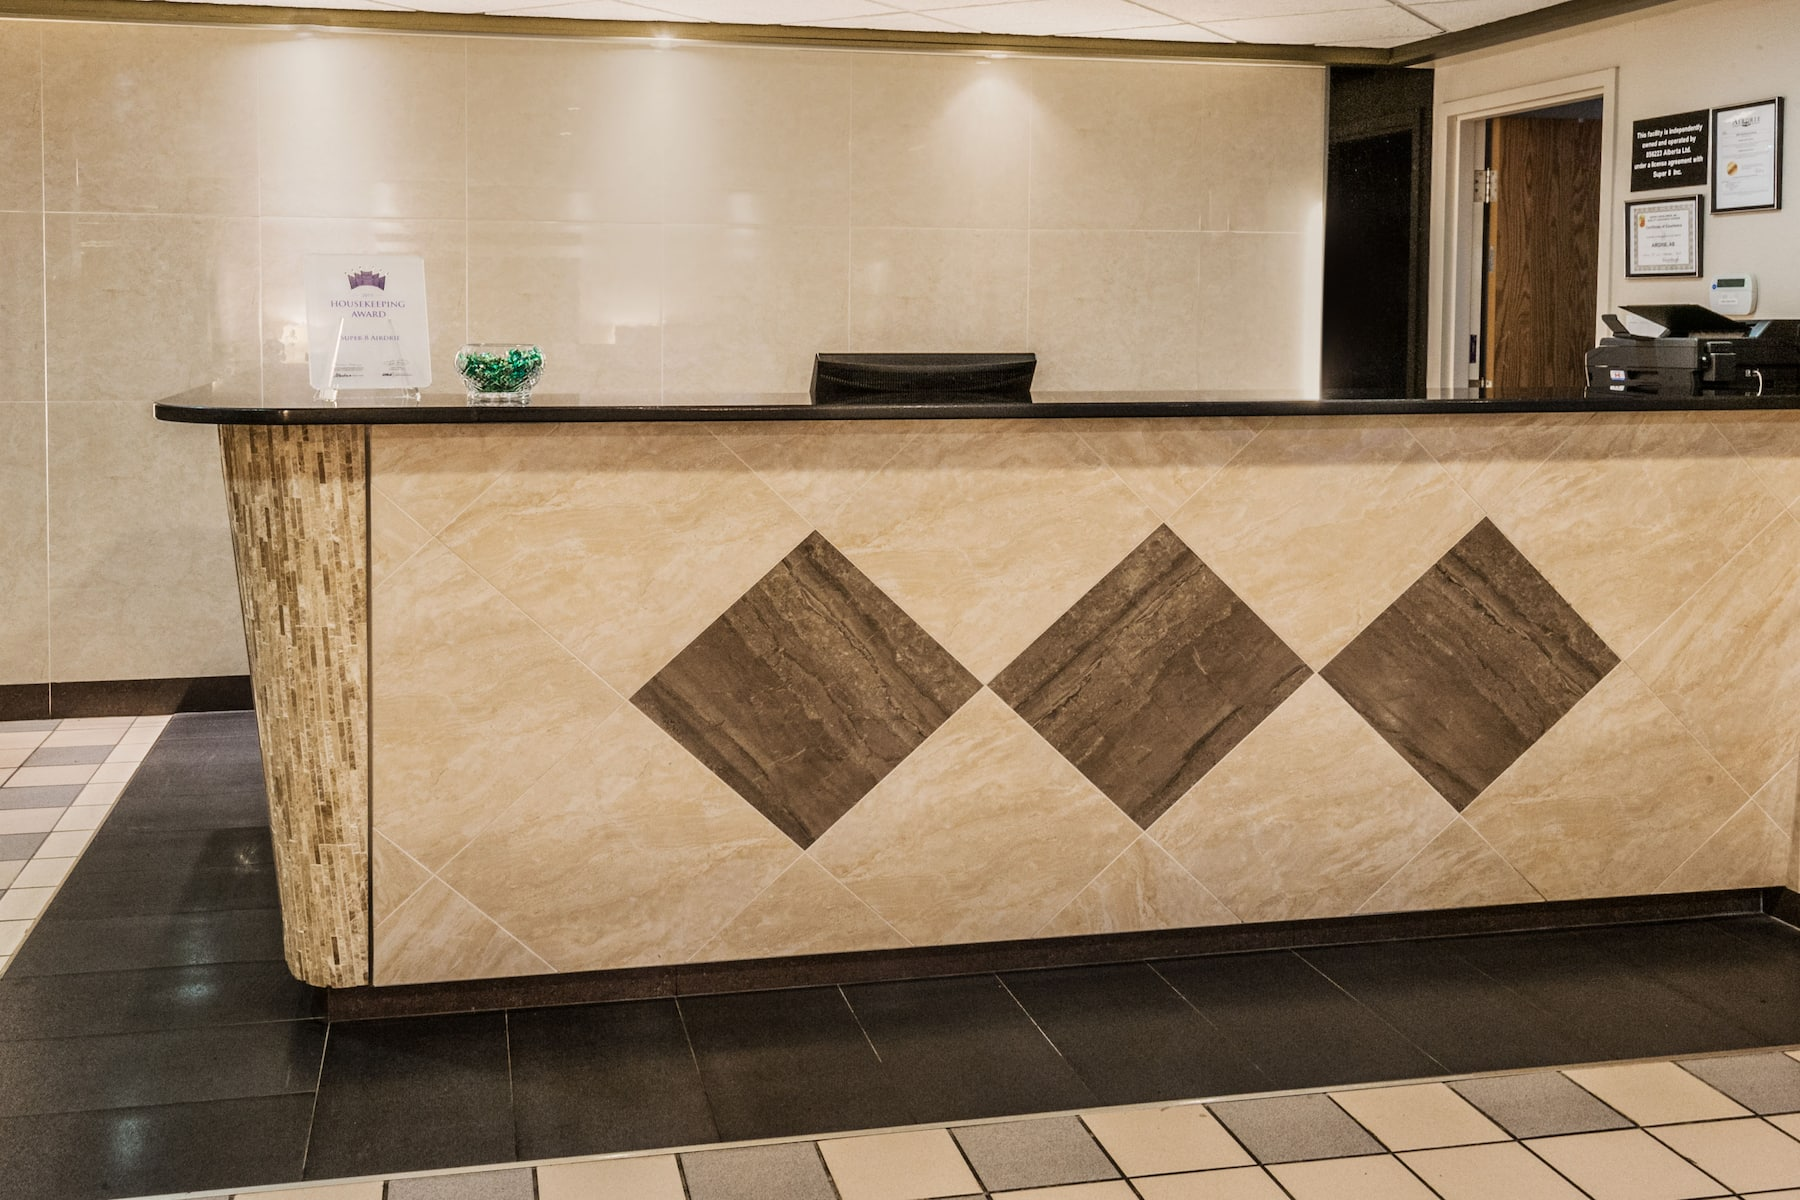 Super 8 By Wyndham Airdrie Ab Airdrie Ab Hotels